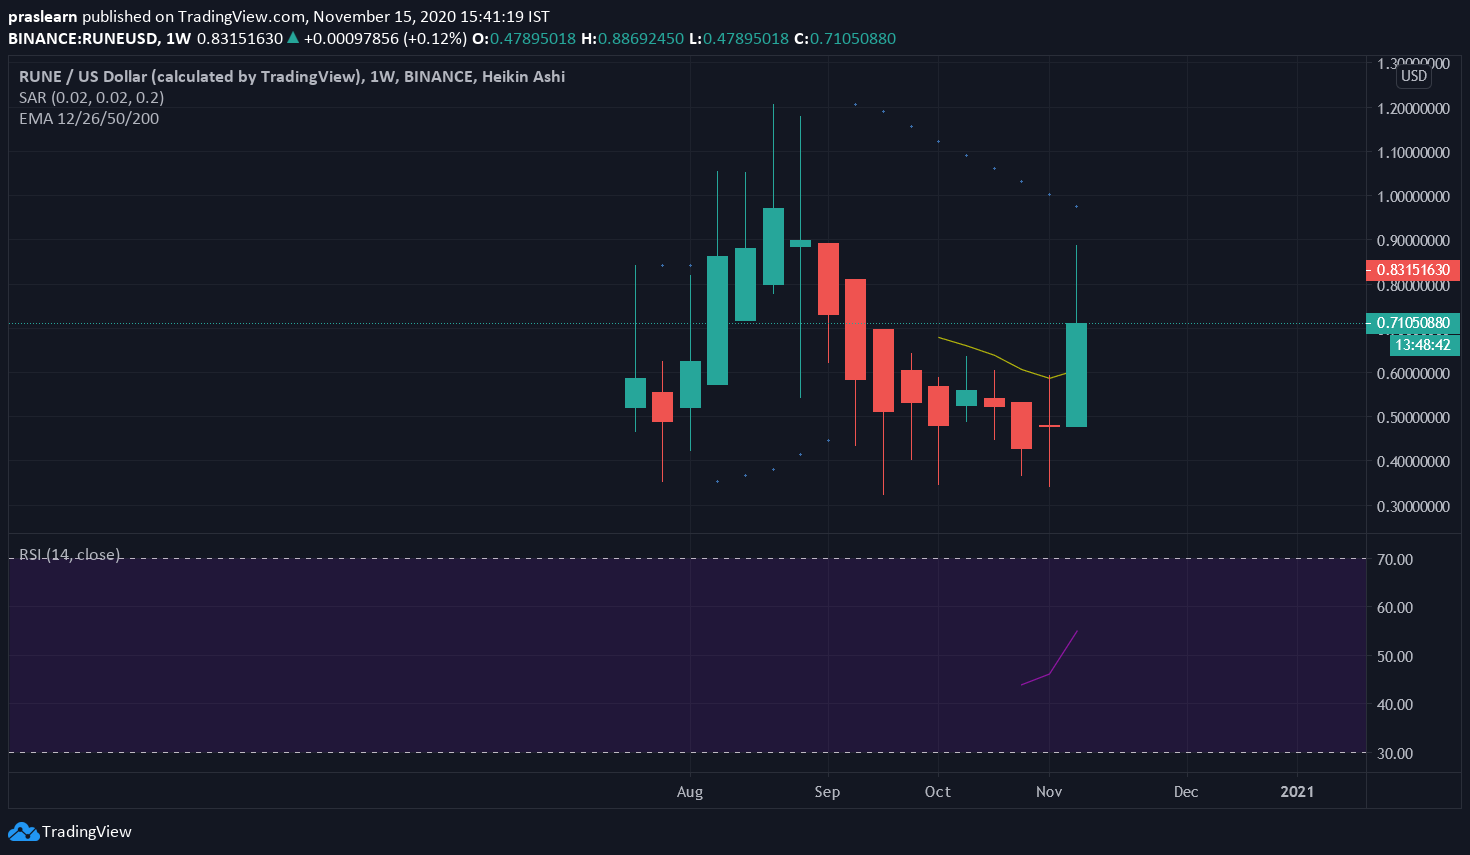 RUNE/USD Weekly Chart: Tradingview